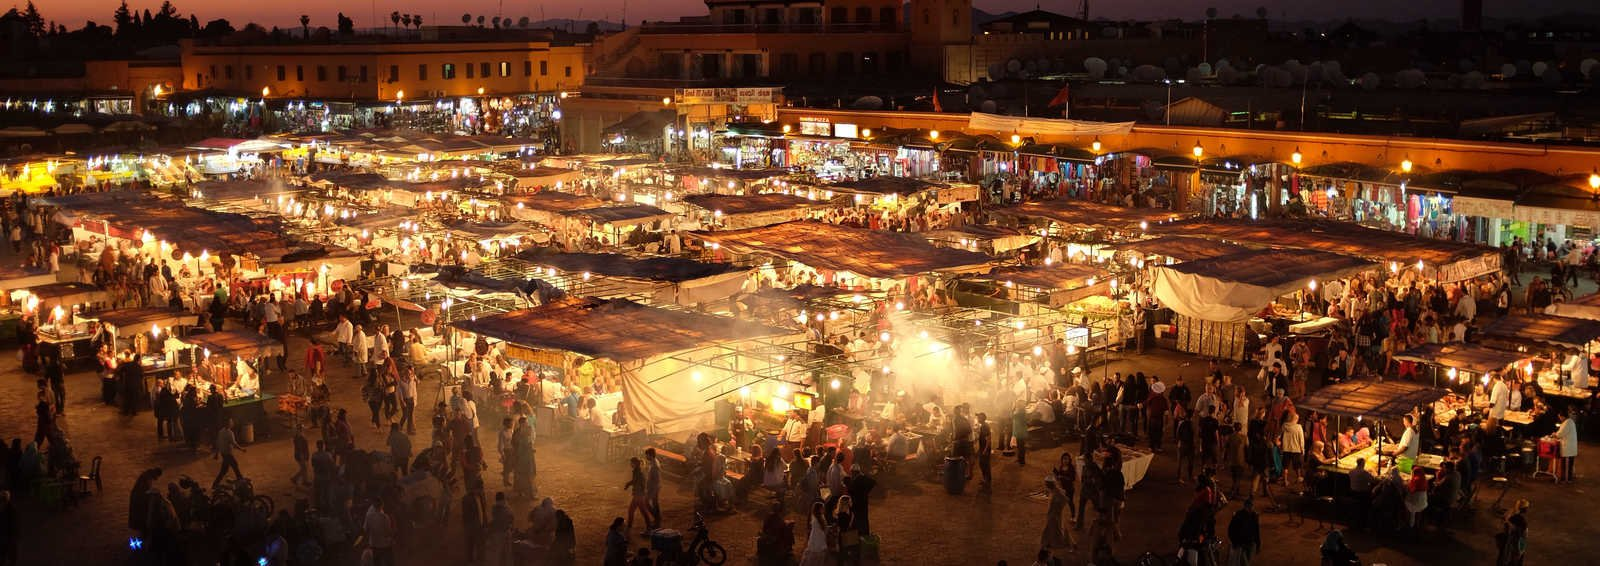 Market square in Marrakech, Morocco